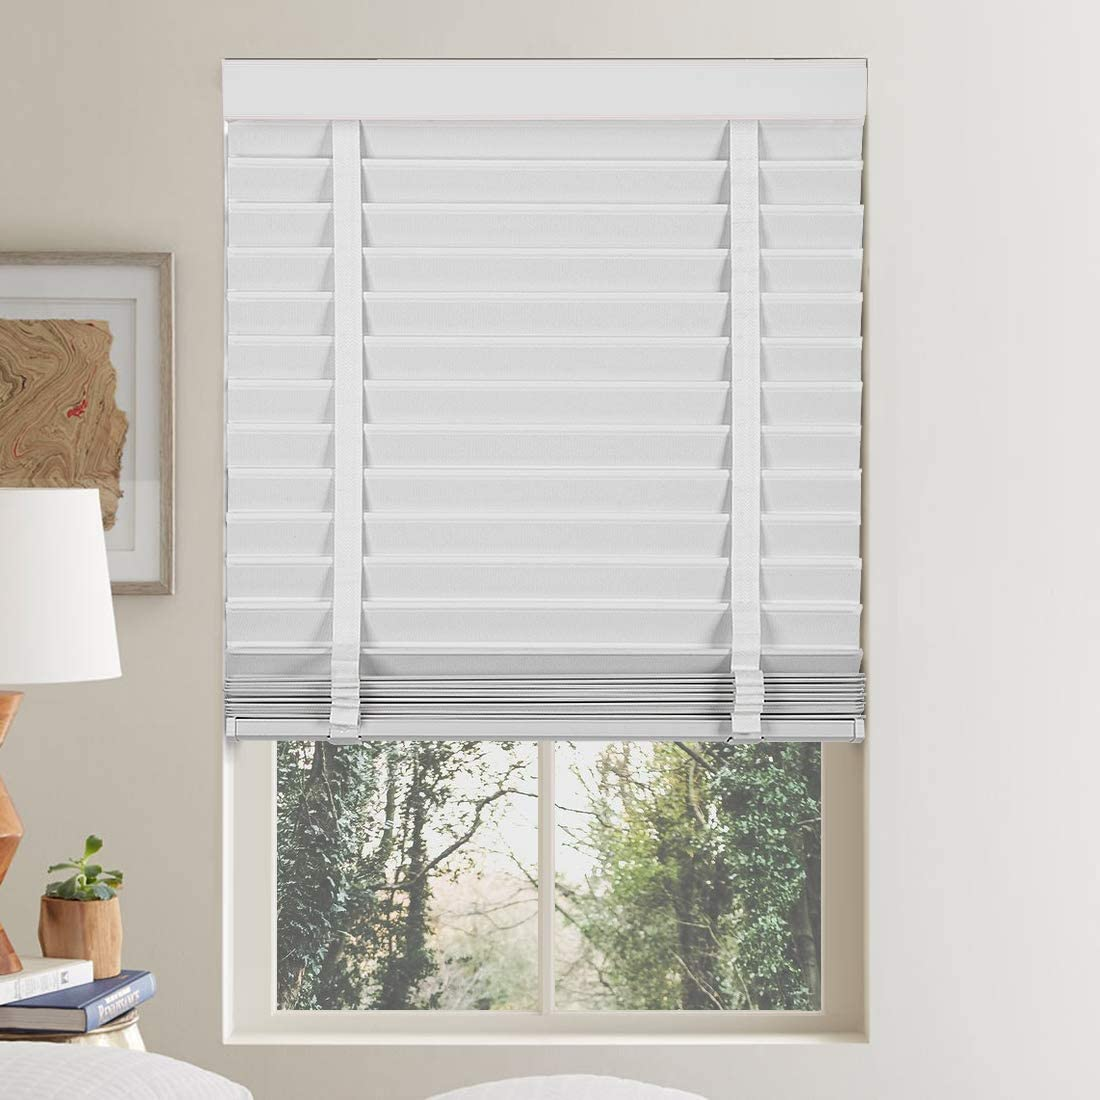 Keego 2 Faux Wood Window Blinds Venetian Blinds Custom Cut to Size, Polyester Fabric Horizontal Blinds Light Filtering Cloth Blind with Decorative Cassette, White 27.75 W x 60 H